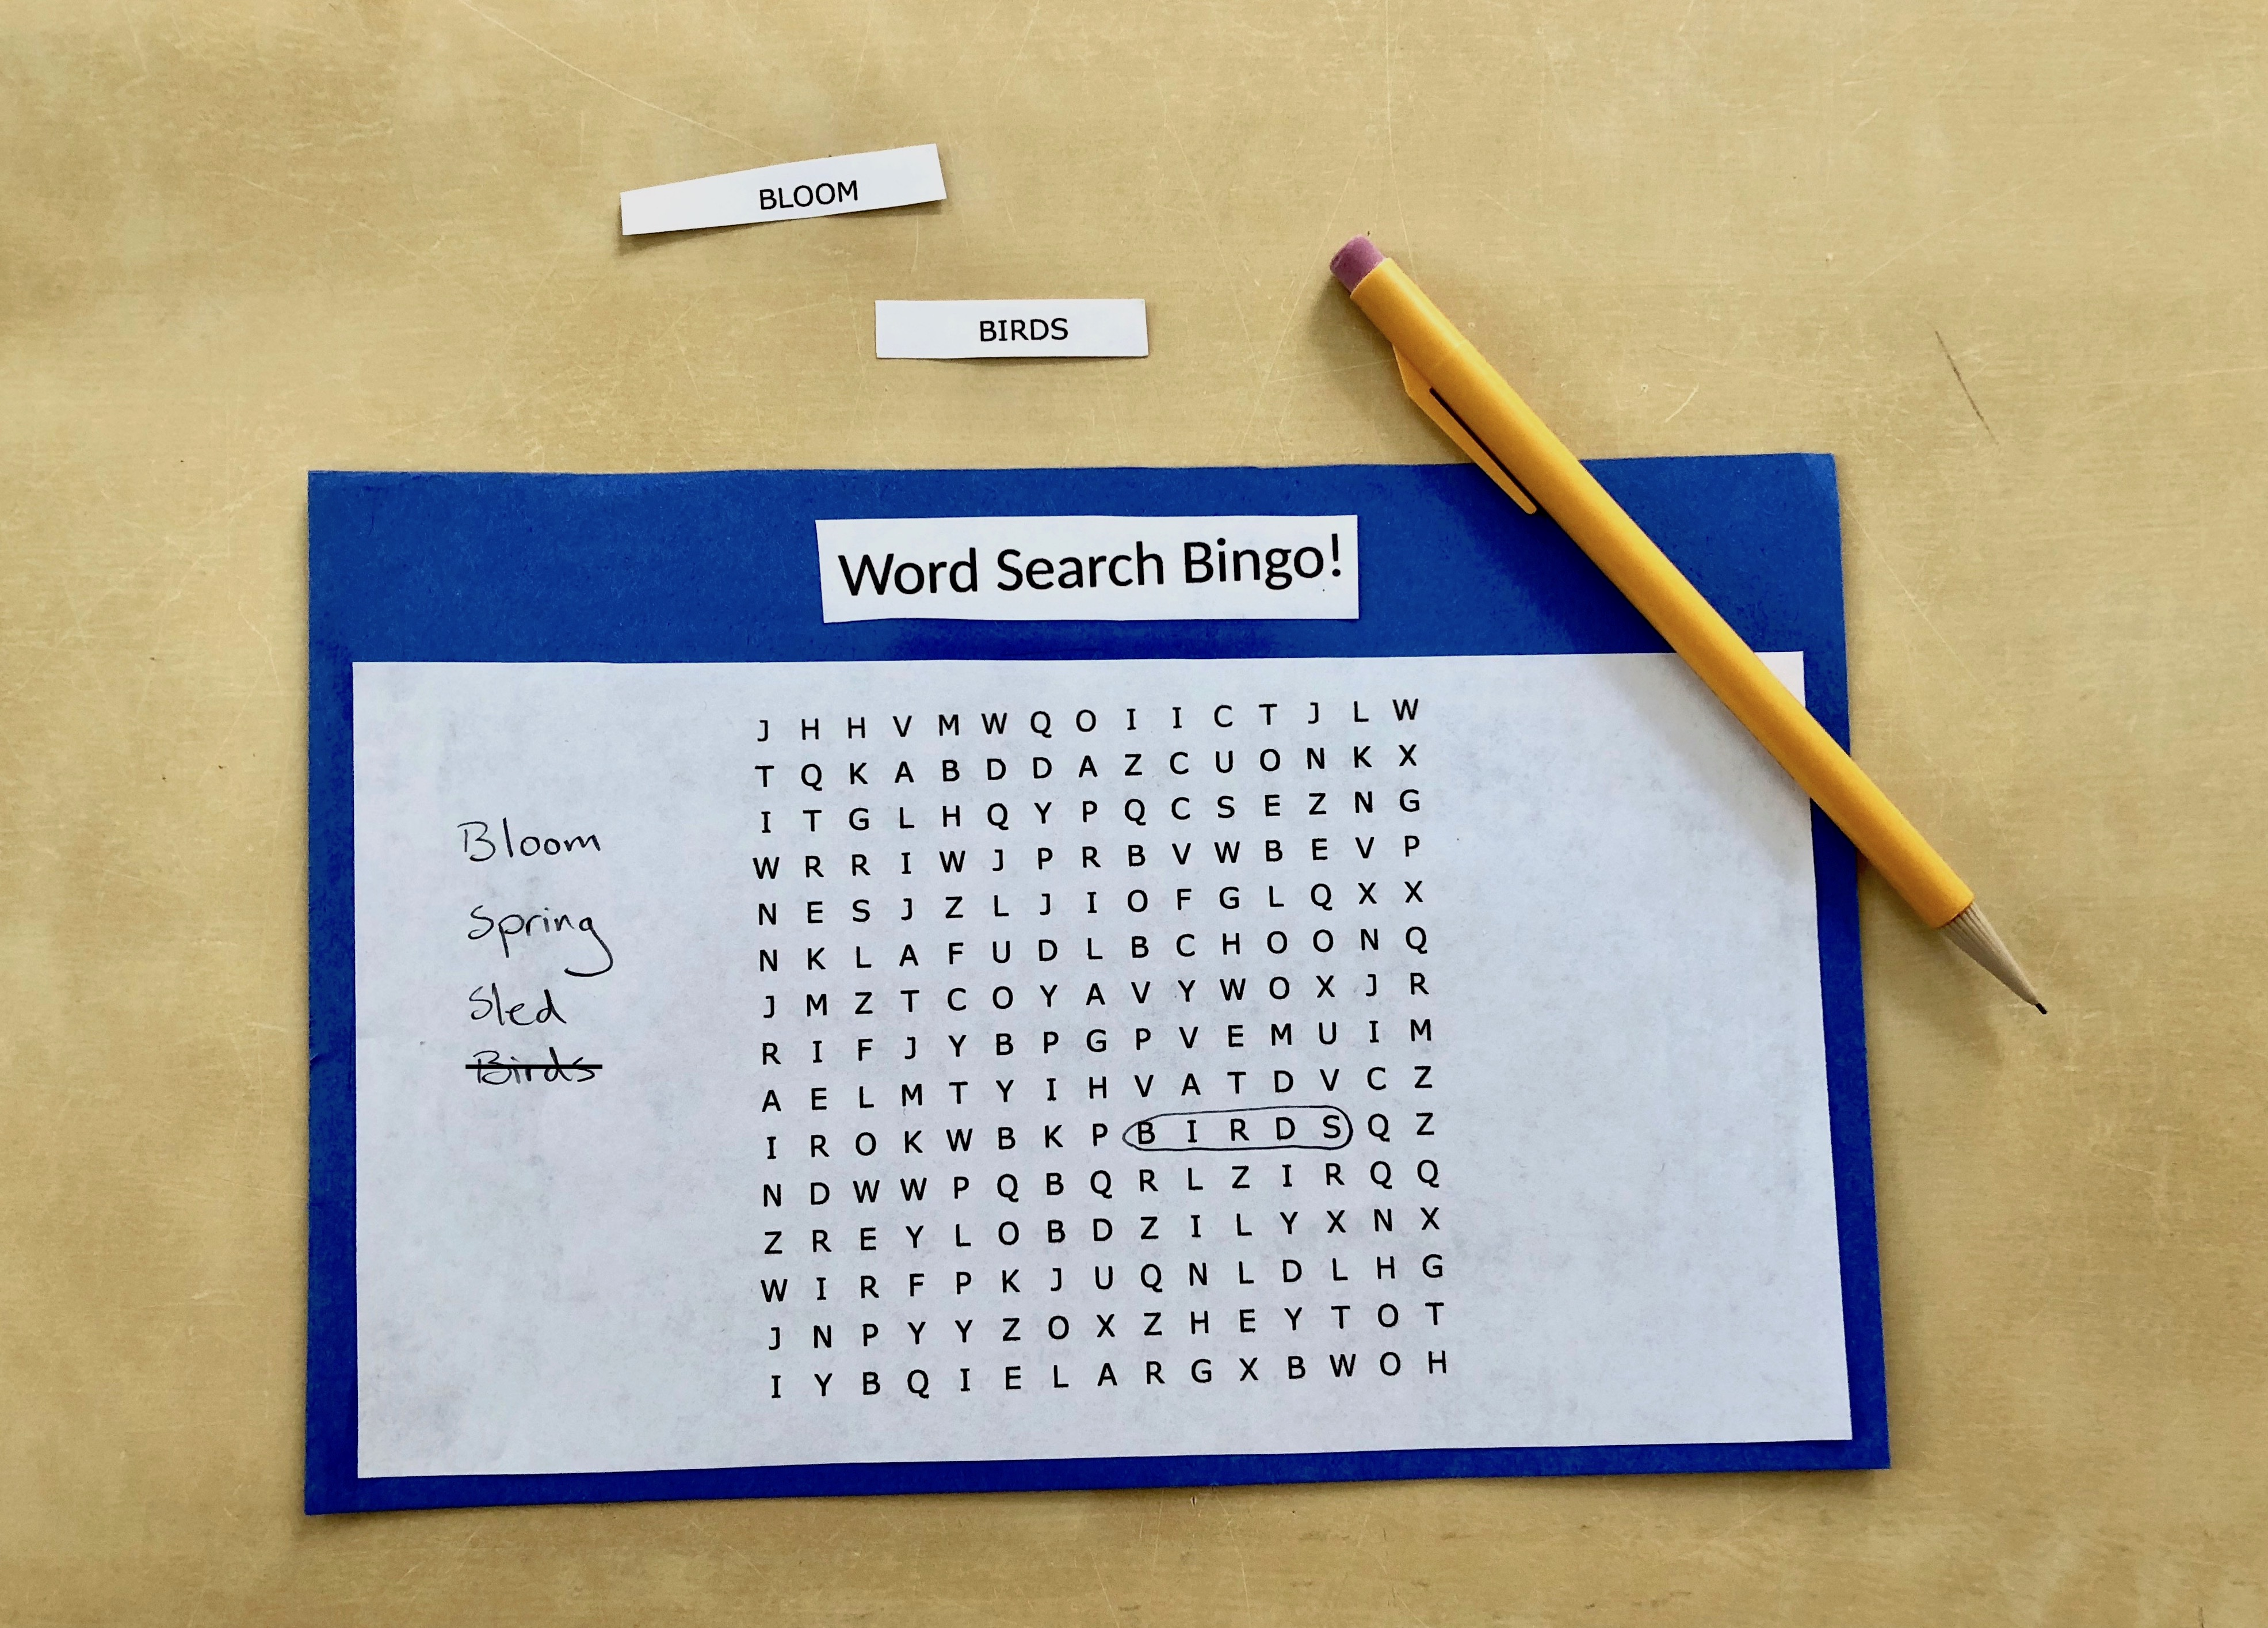 Word Search Bingo